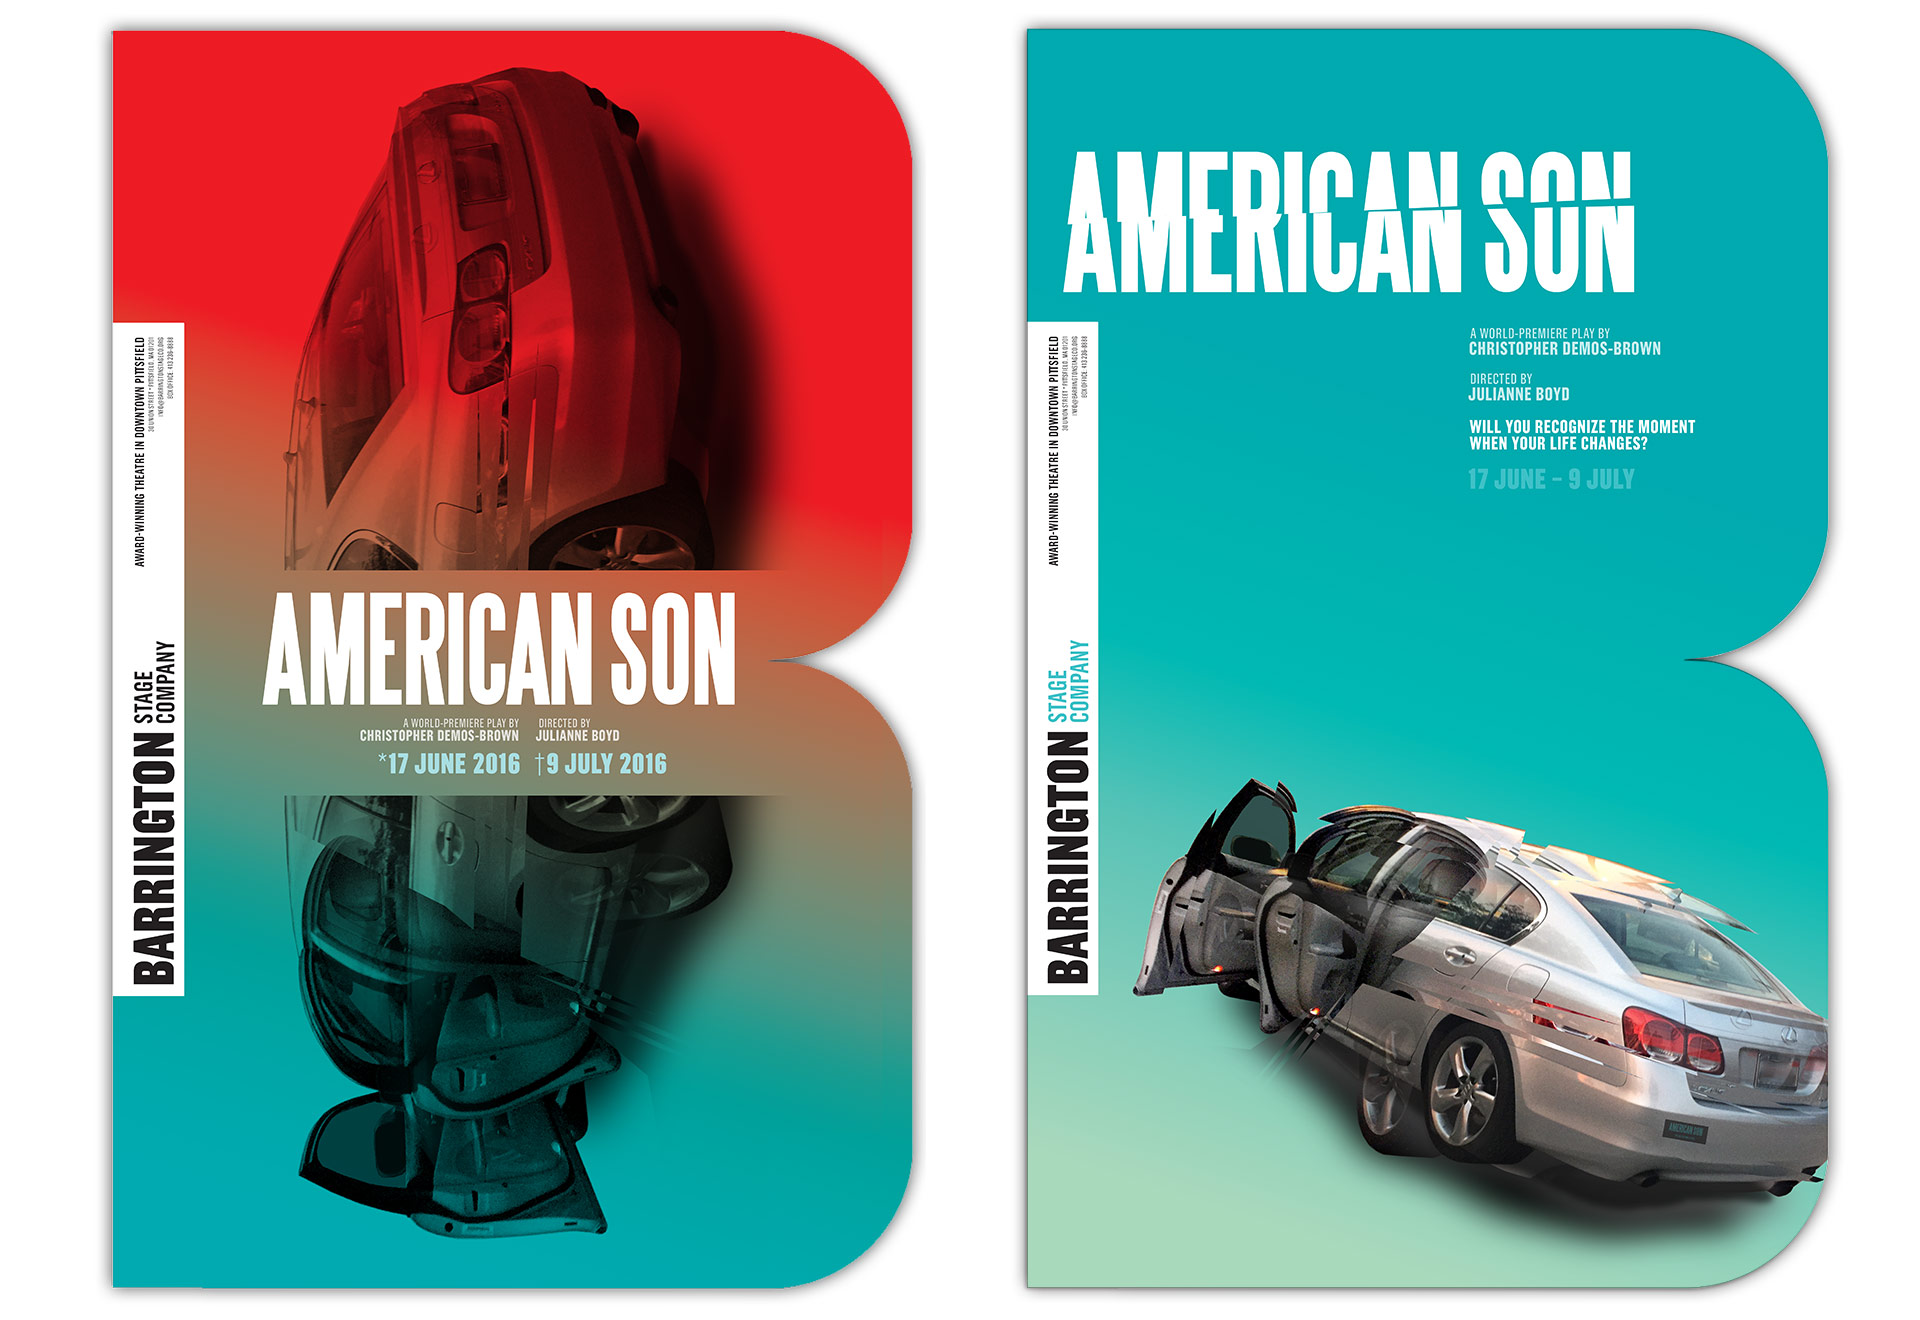 Barrington-comps-american-son-02.jpg